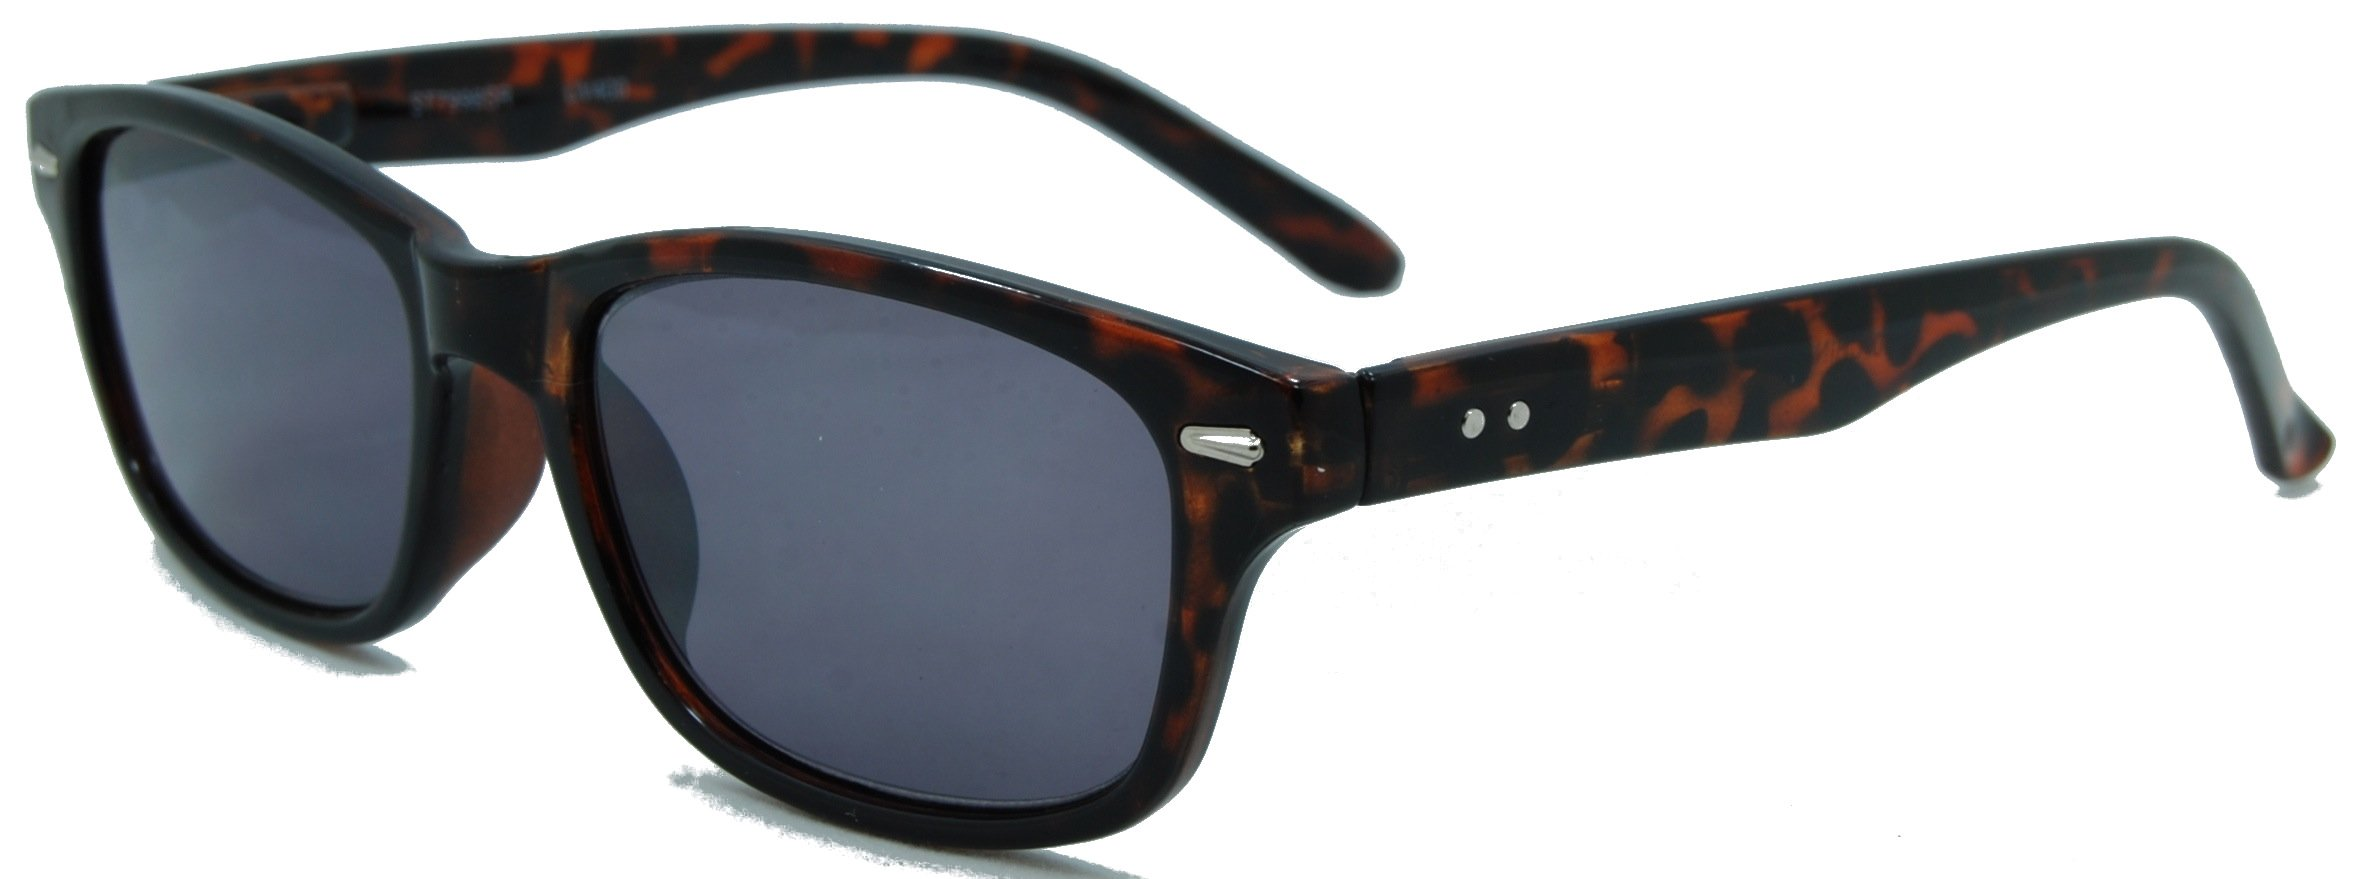 InSight, Classic Full Reader Sunglasses. Not BiFocals/Tortoise/1.50 Strength by In Style Eyes